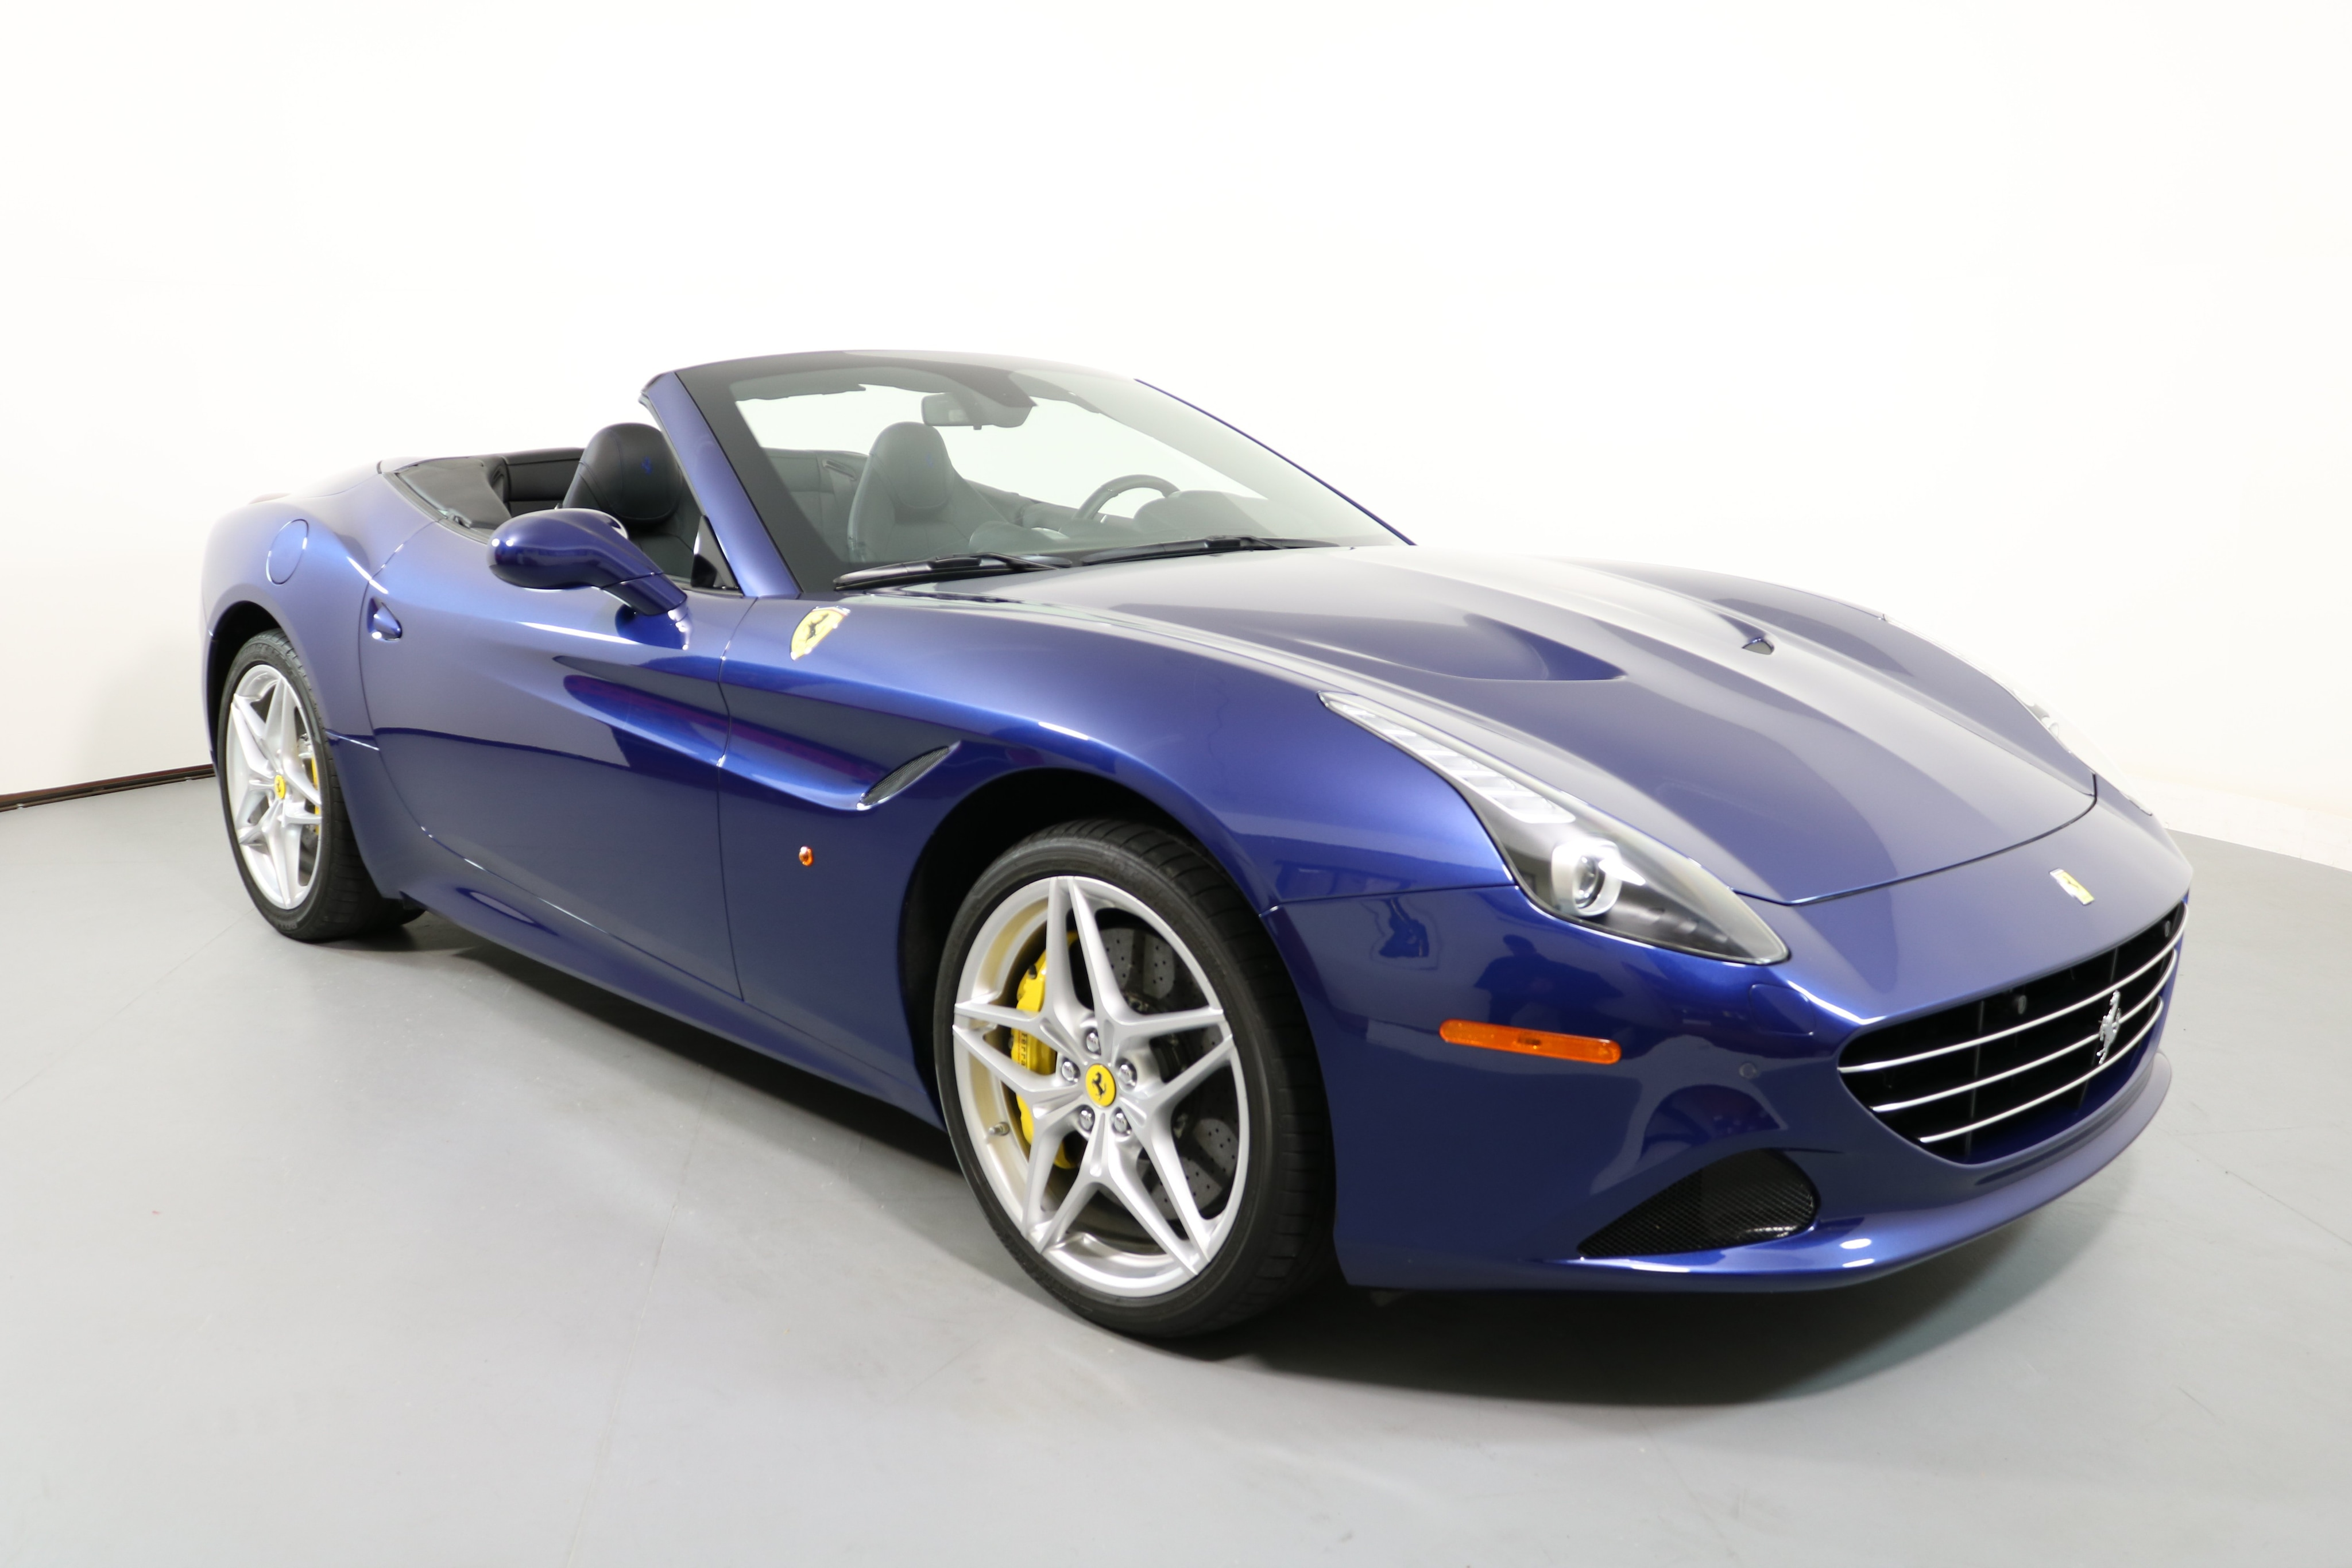 Used 2016 Ferrari California T San Francisco Ca Zff77xja1g0215716 Serving The Bay Area Mill Valley San Rafael Redwood City And Silicon Valley